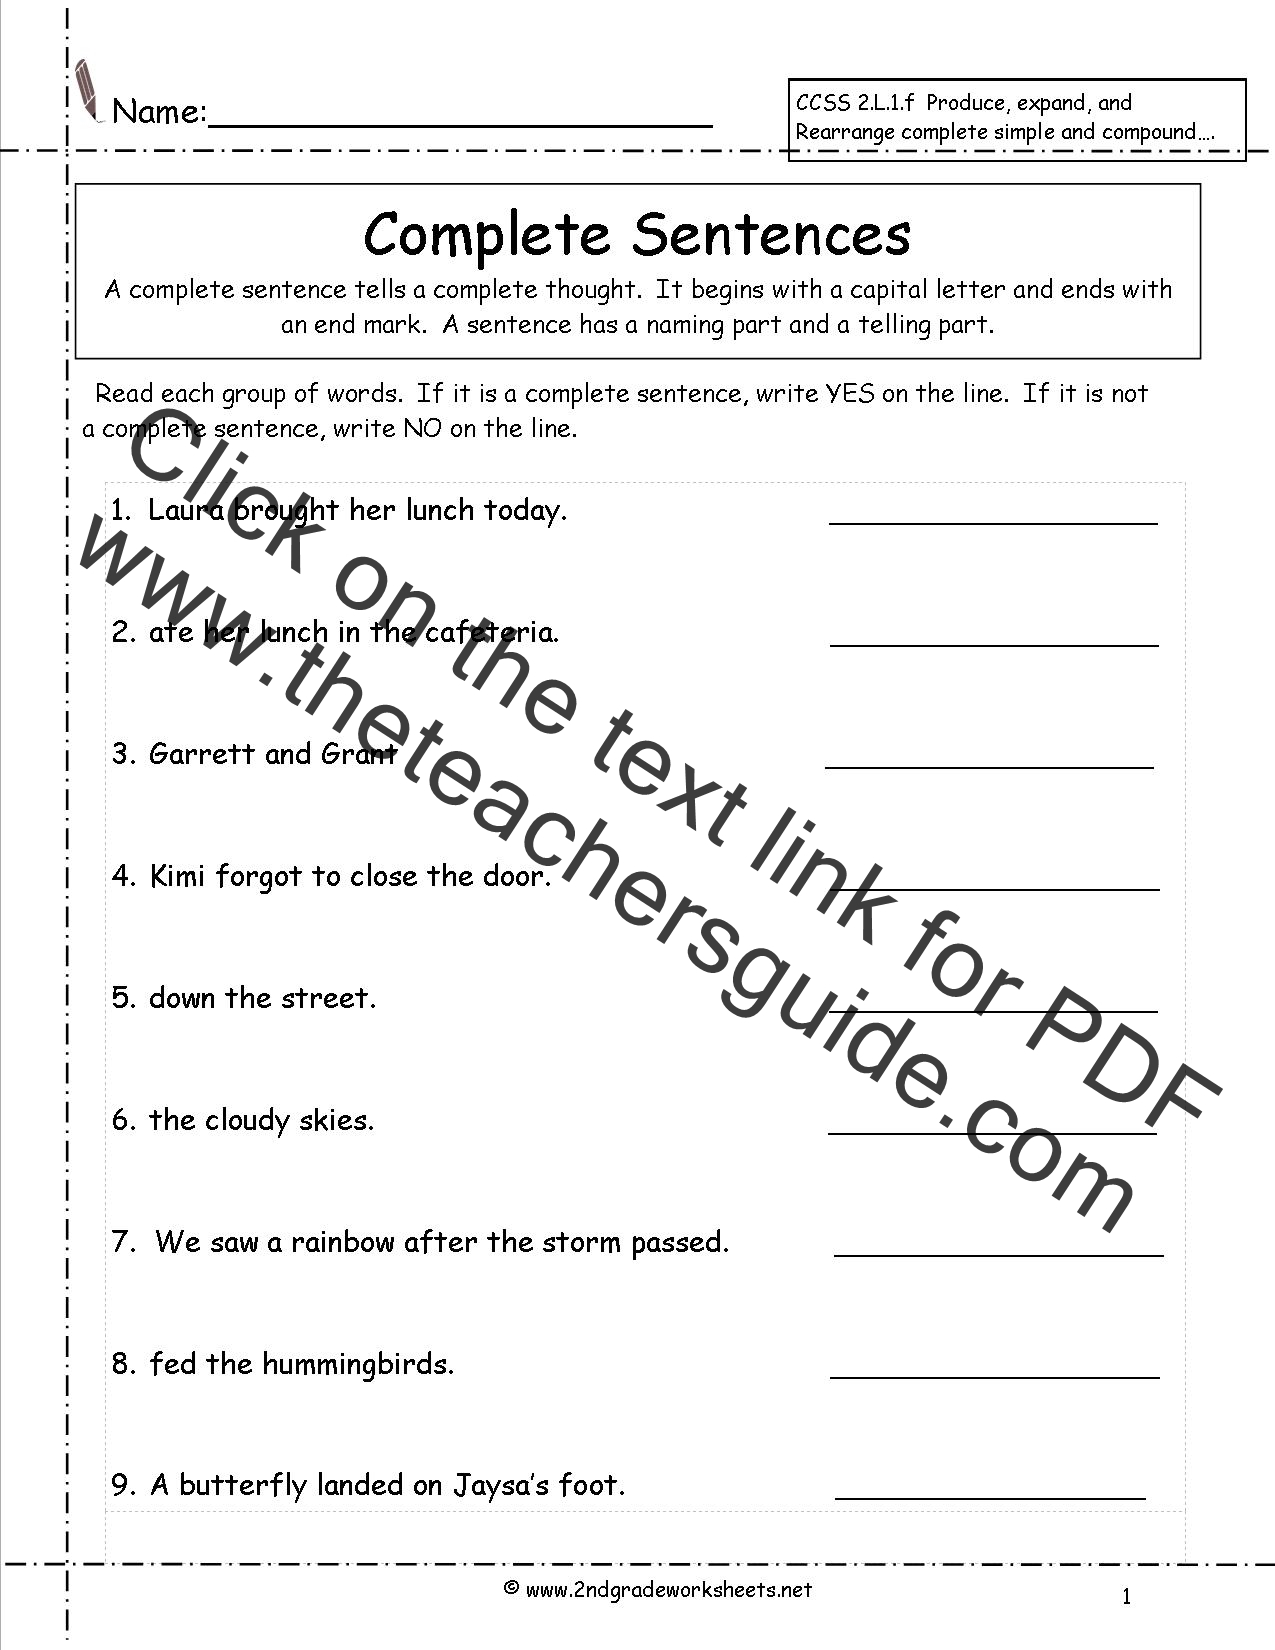 worksheet Simple Sentence Worksheet second grade sentences worksheets ccss 2 l 1 f worksheets